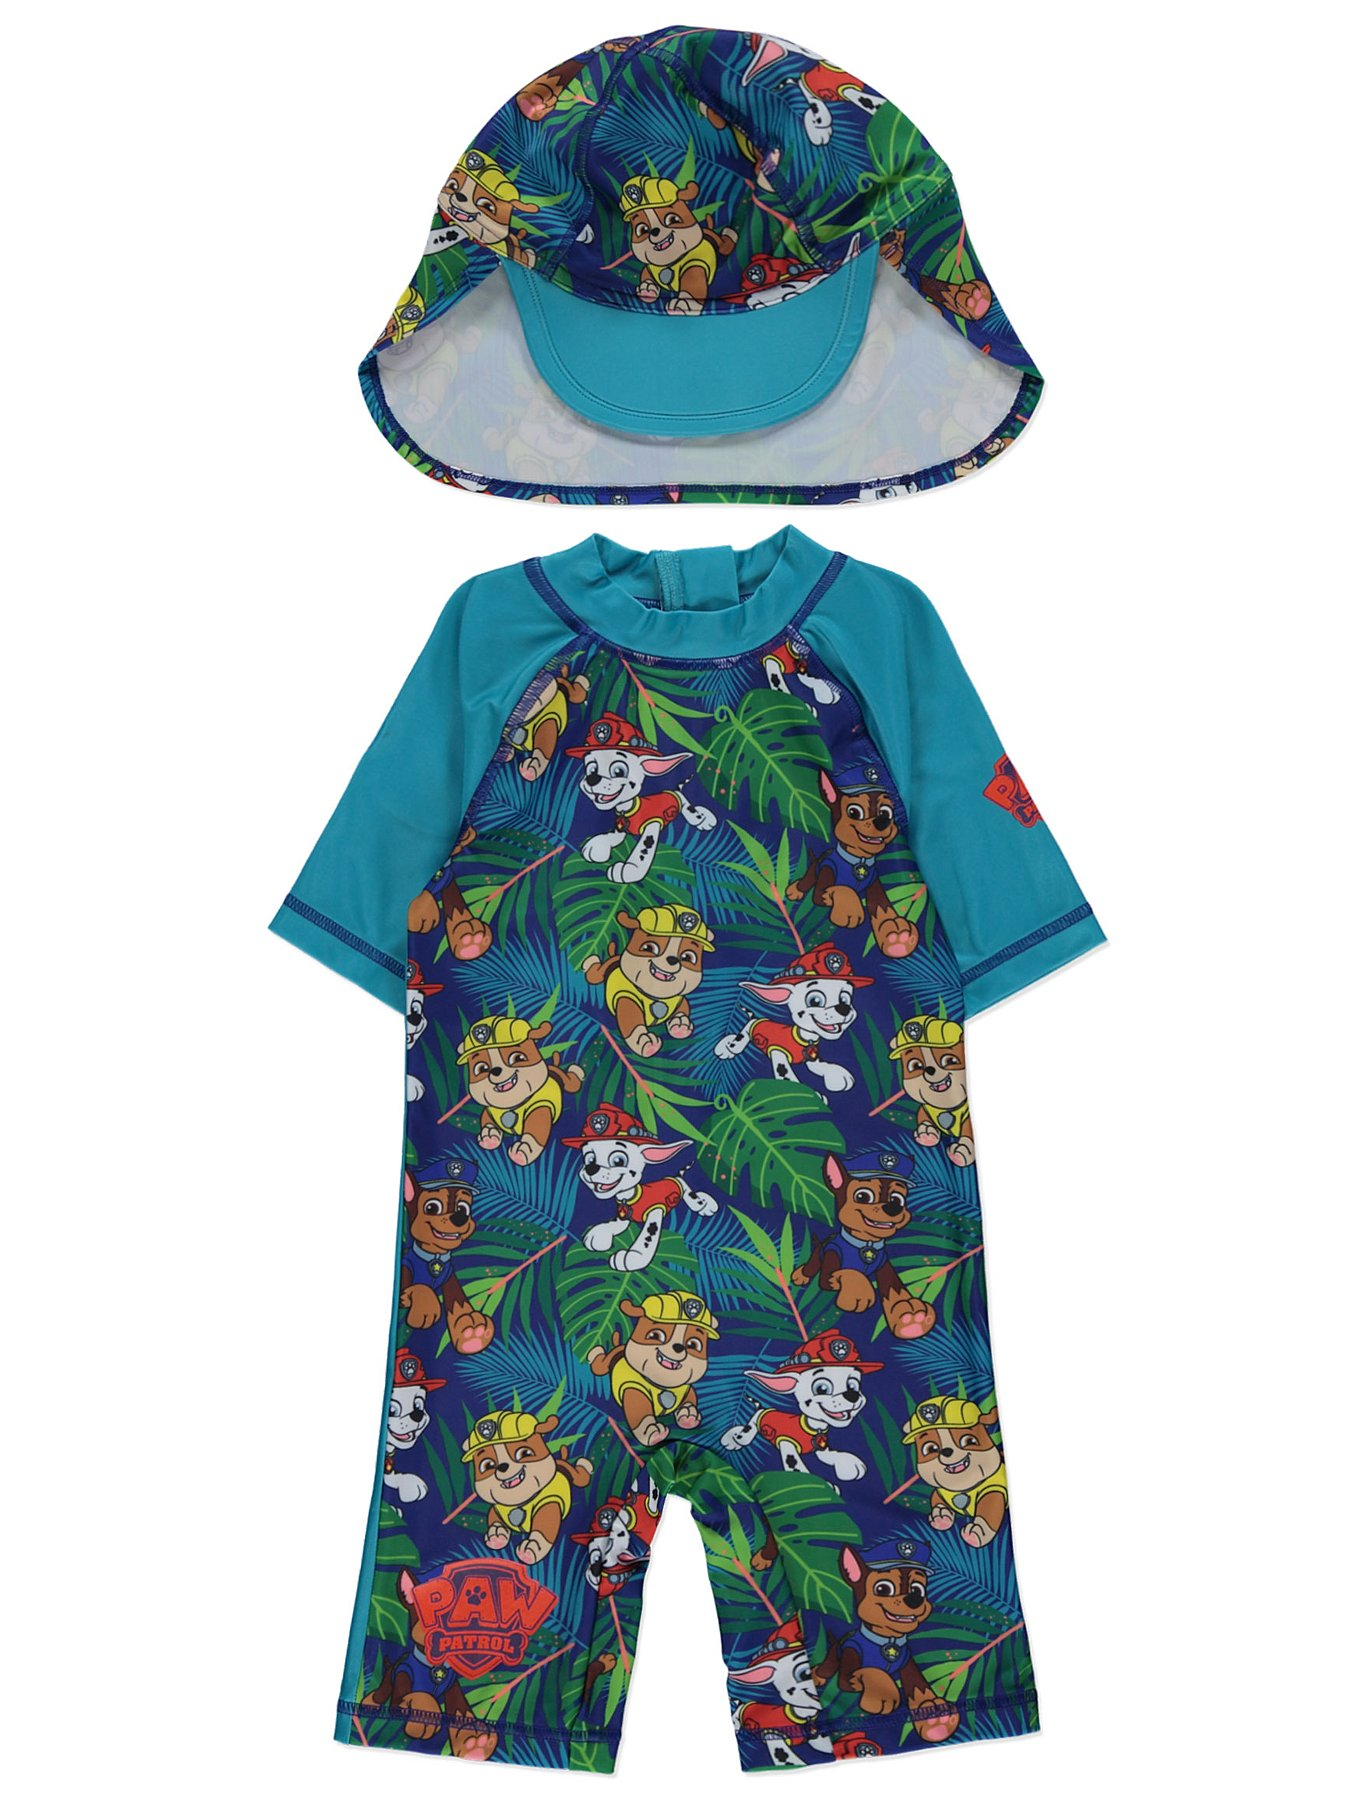 6cab3a9afa PAW Patrol Sun Protection UPF 40 Swimsuit and Hat Set